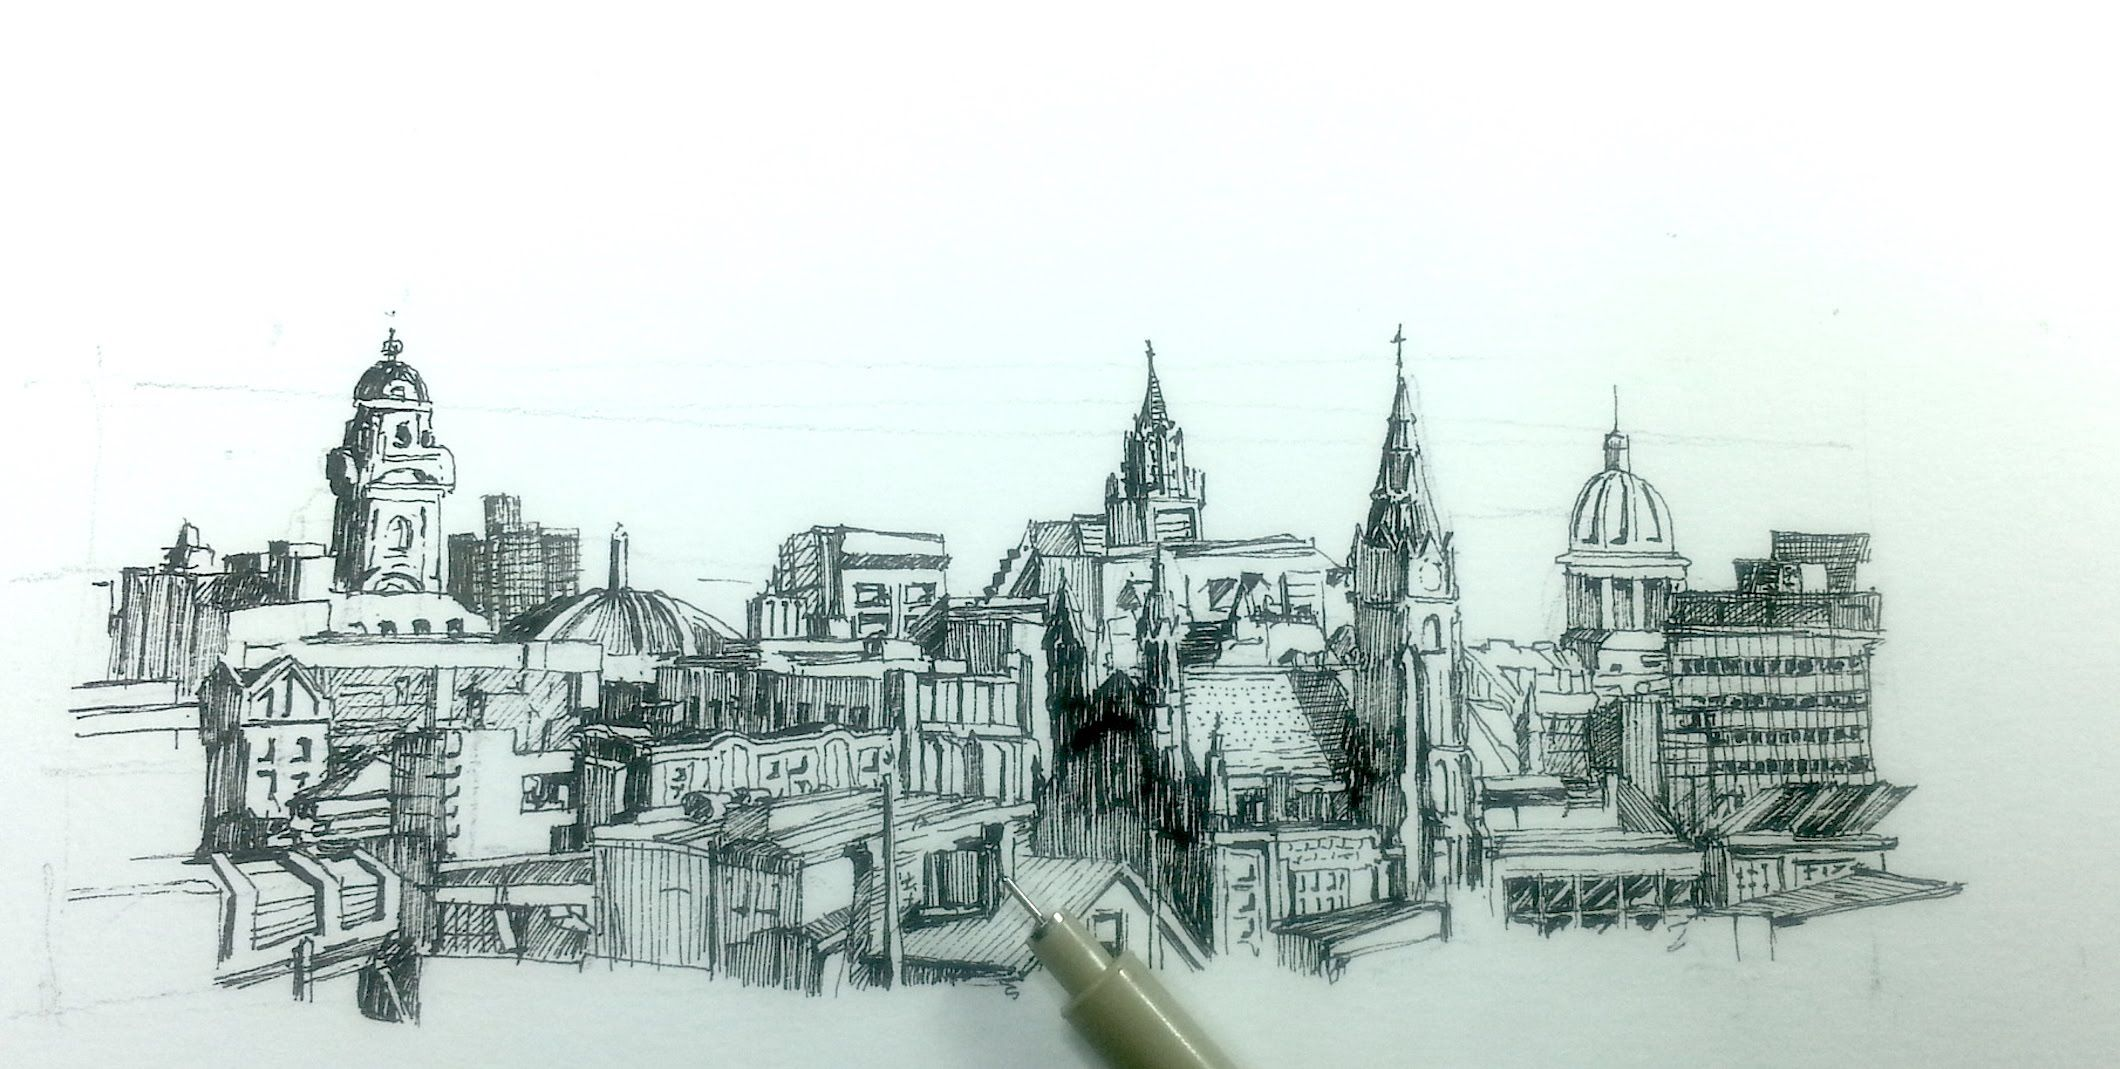 How To Draw A Panoramic City Skyline Or Cityscape With Buildings Skyline Drawing Landscape Sketch Art Inspiration Drawing